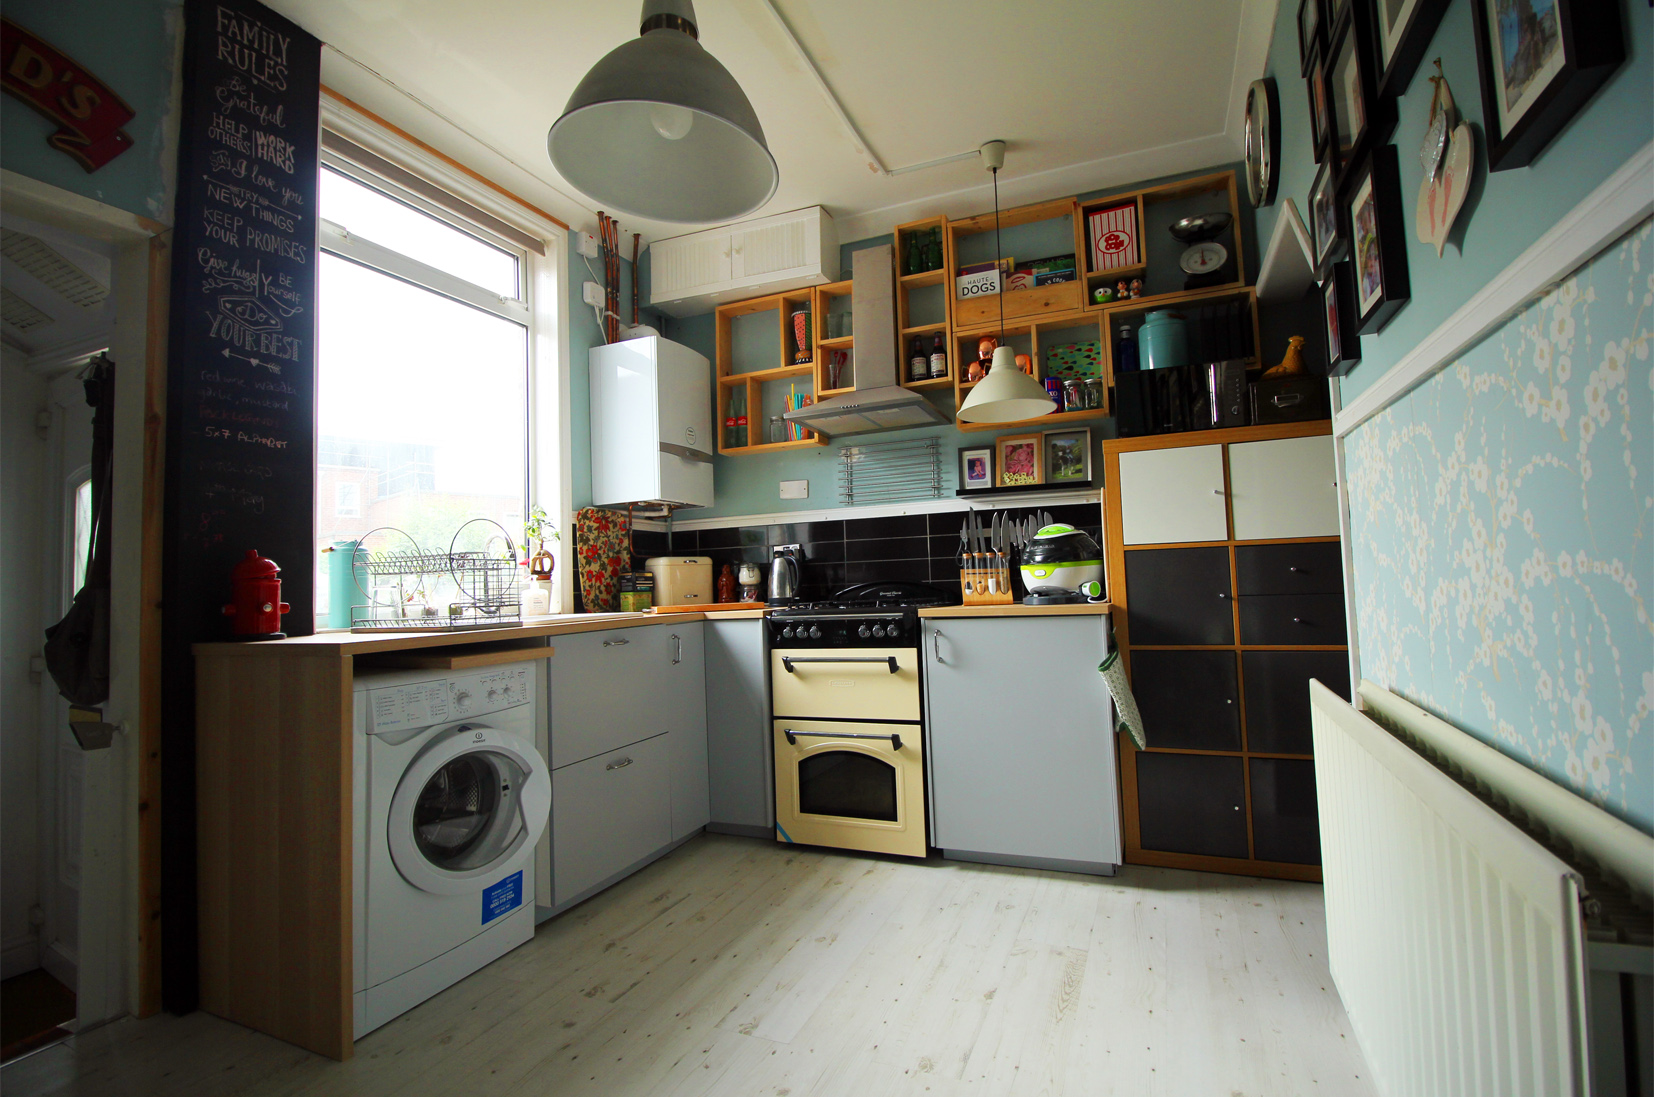 Kitchen, Cooking area